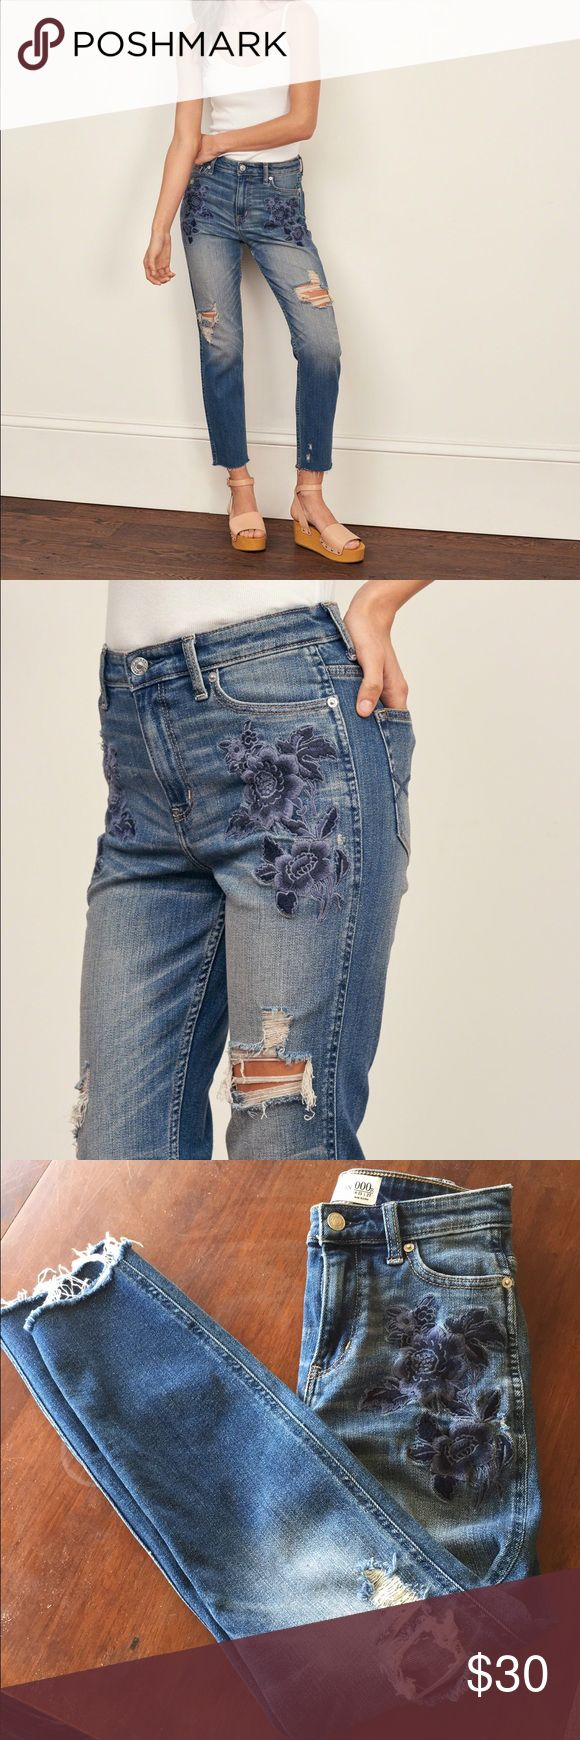 "high rise embroidered curvy jeans 000R high rise embroidered curvy jeans inseam 26.5"" slightly cropped above ankles. like new.destroyed dark wash. Abercrombie & Fitch Jeans Boyfriend"